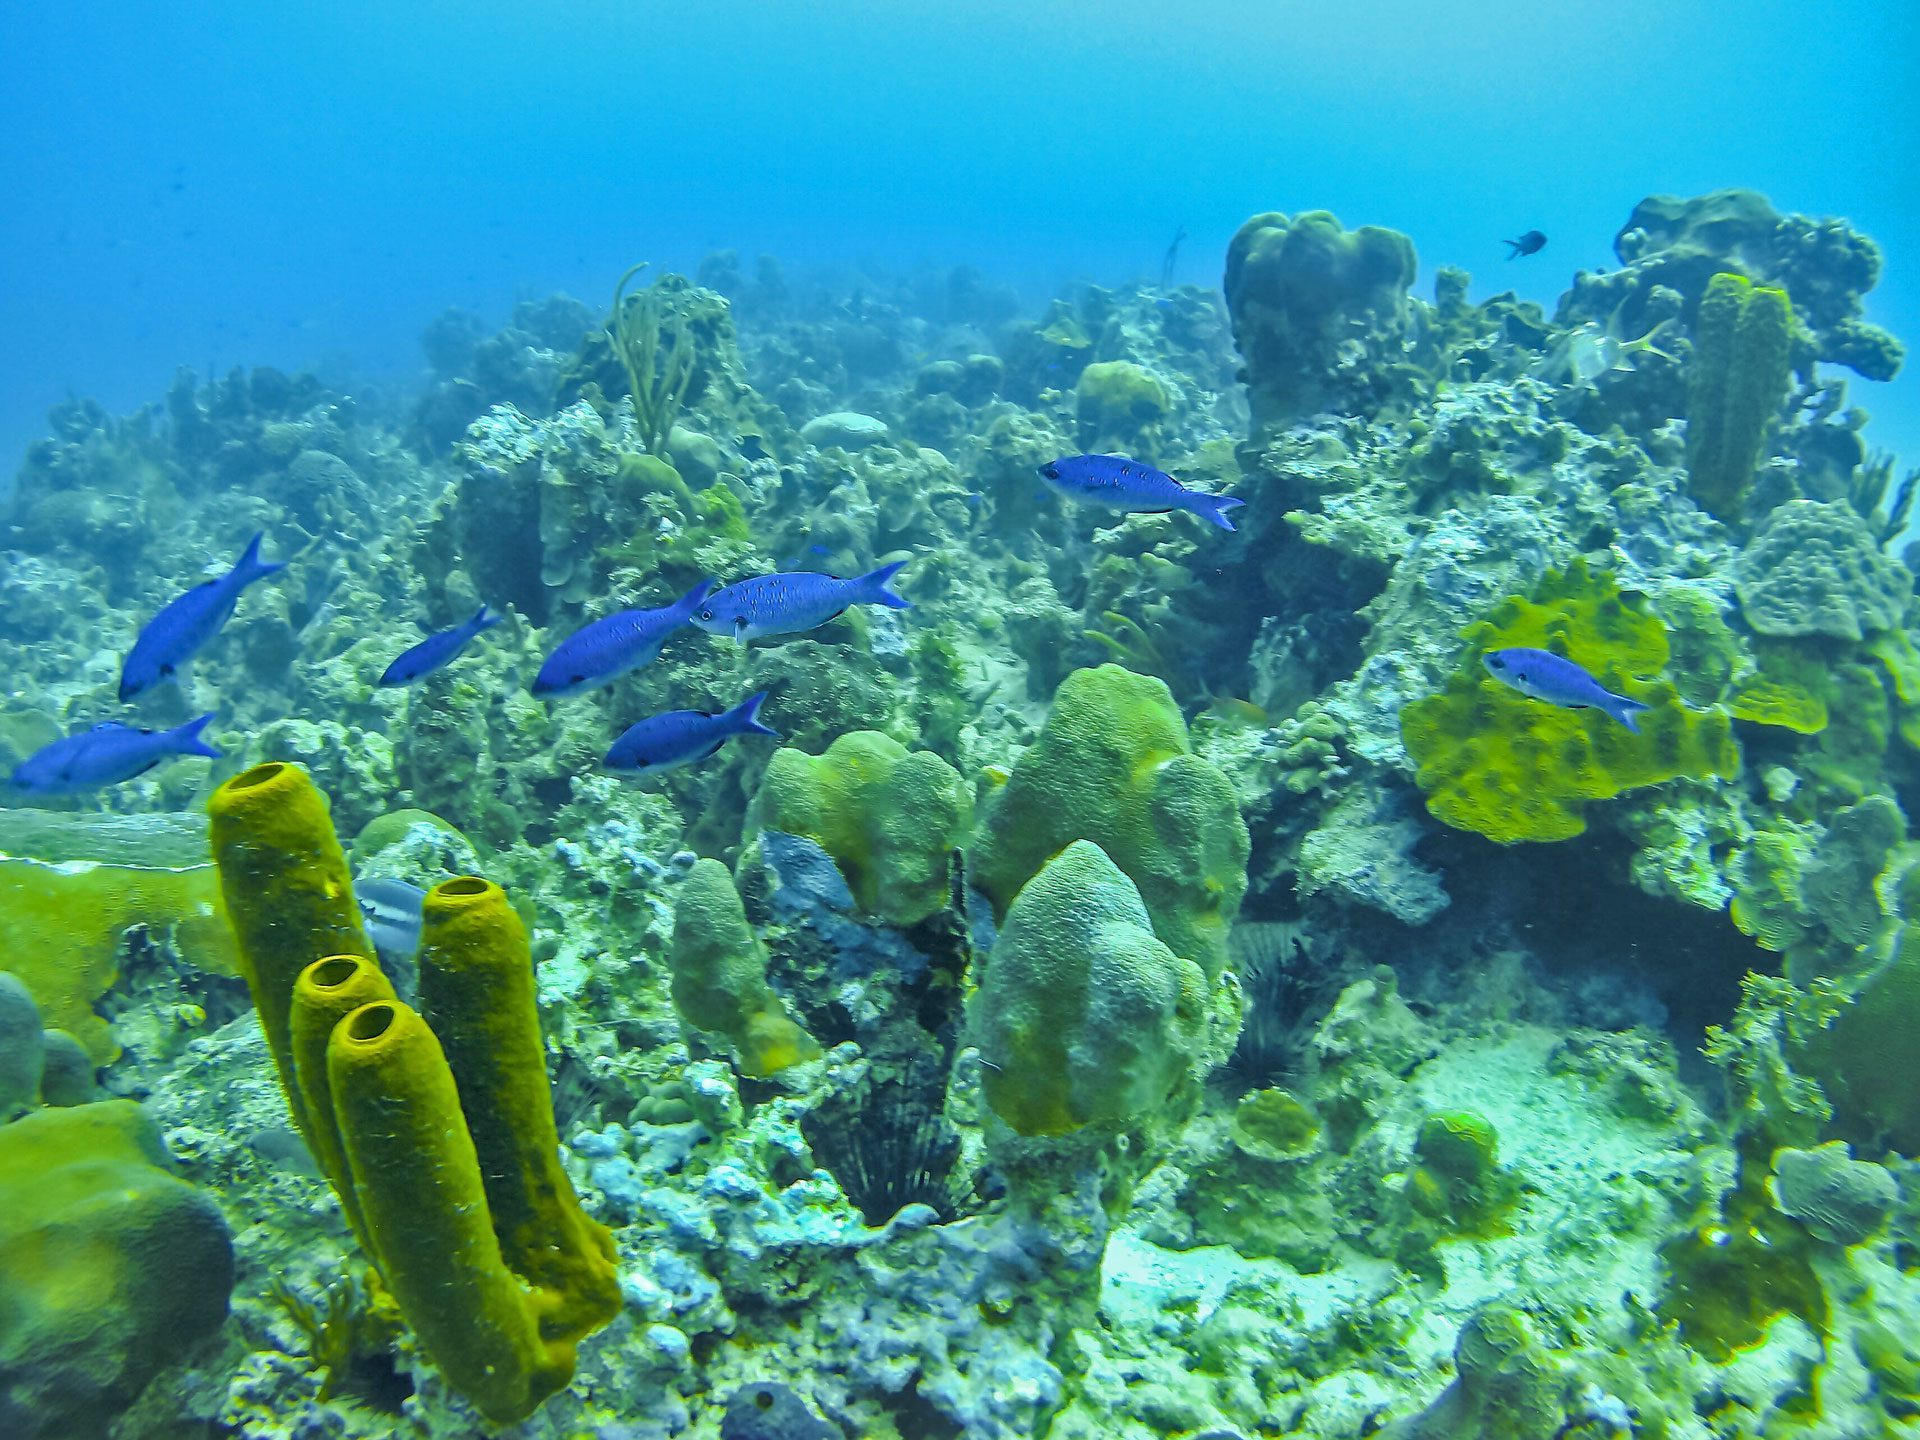 Coral Reef with blue fish, sea urchins, sponges and corals in West End, Jamaica